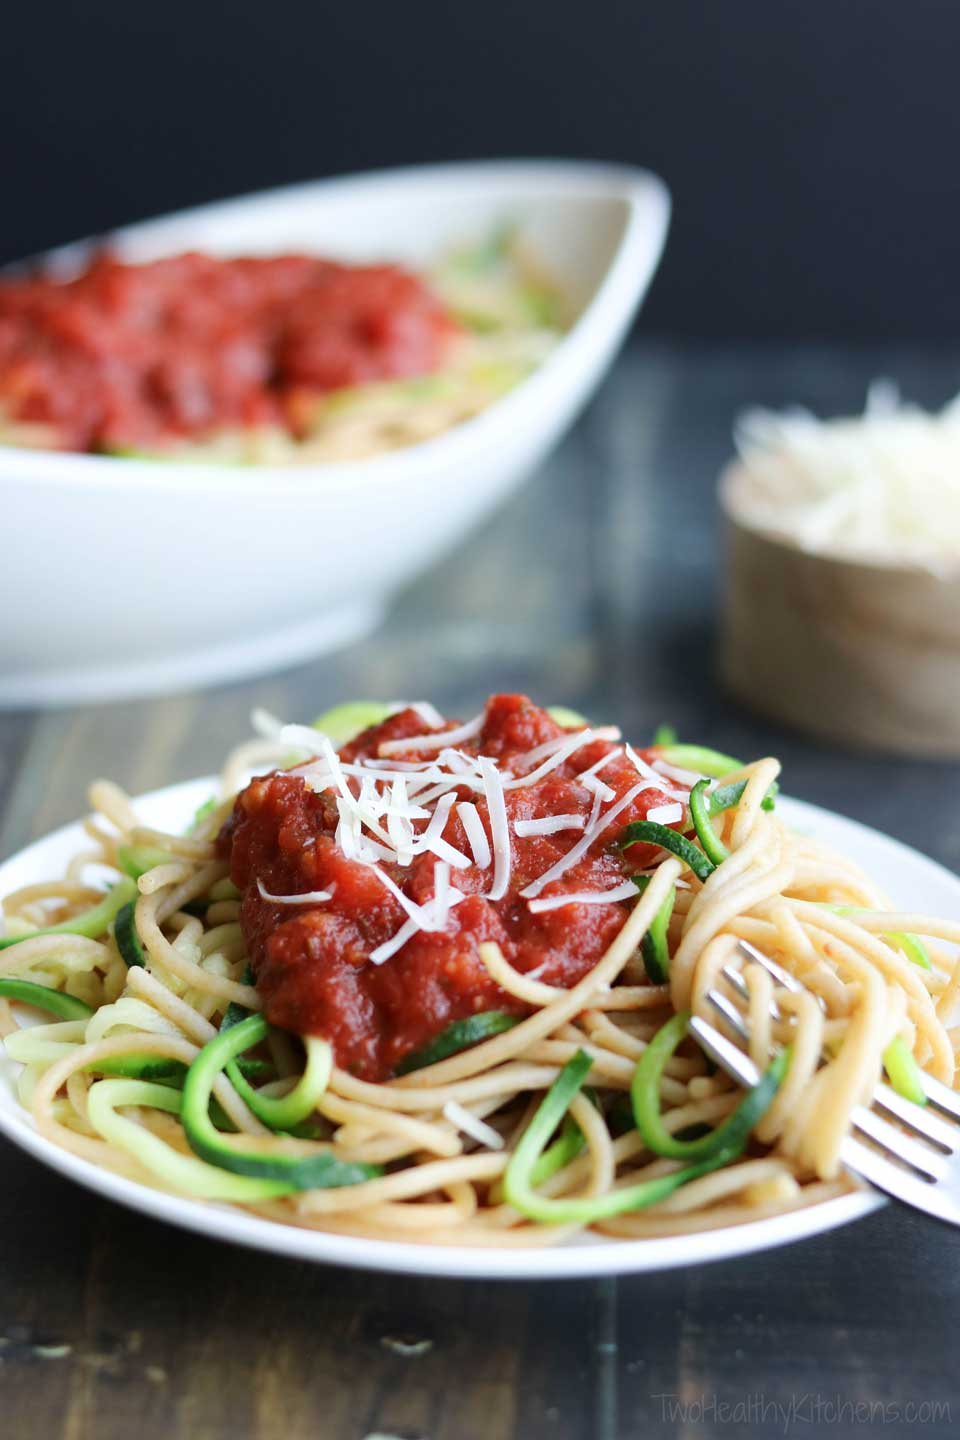 You can change up the proportions of pasta and zucchini noodles based on your family's preferences.